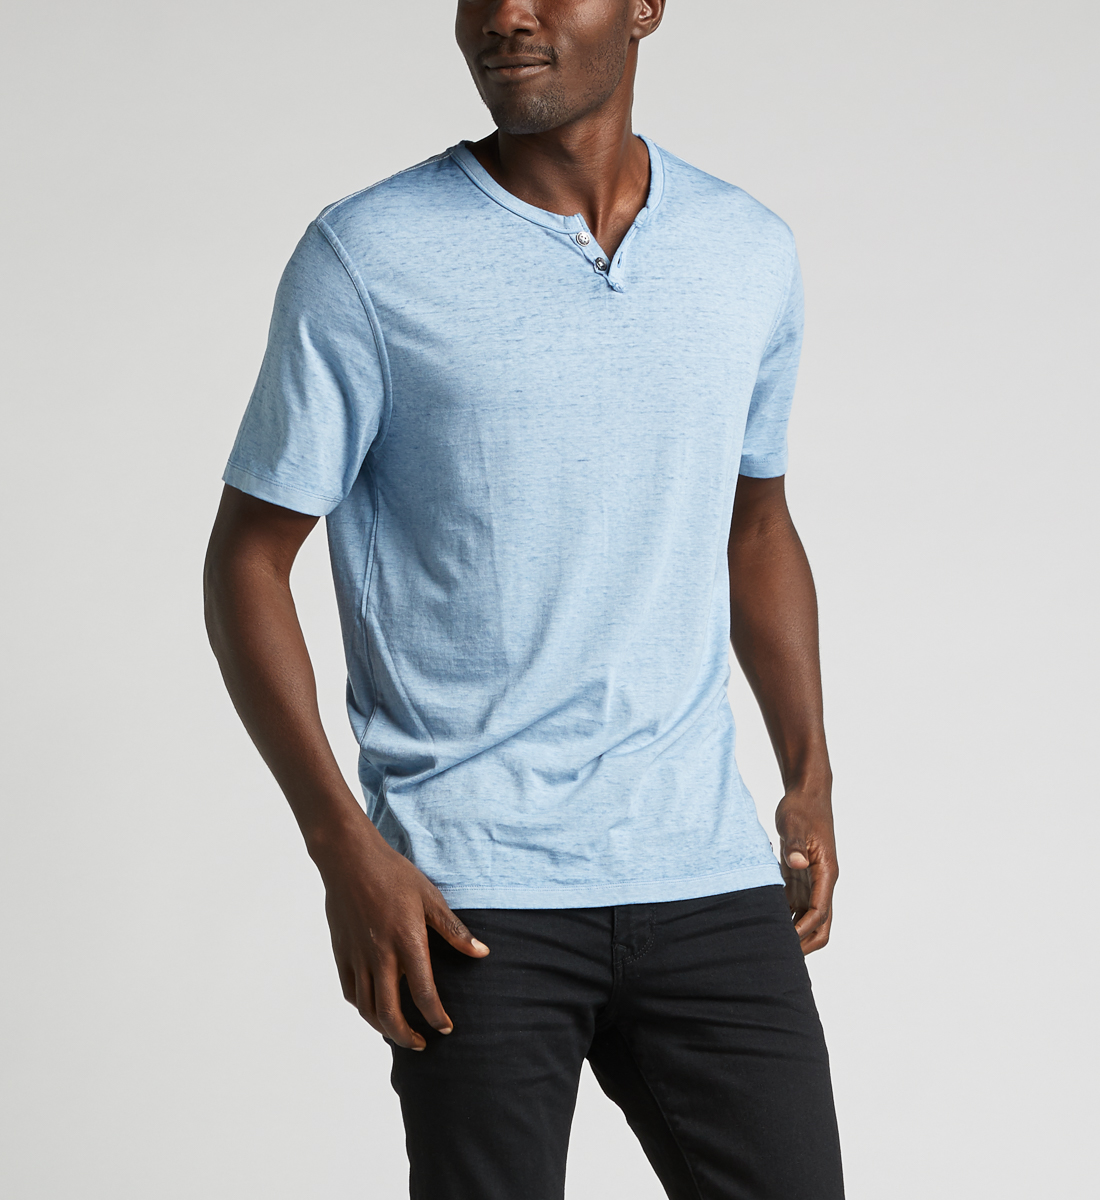 Kaleo Henley Tee,Light Blue Front